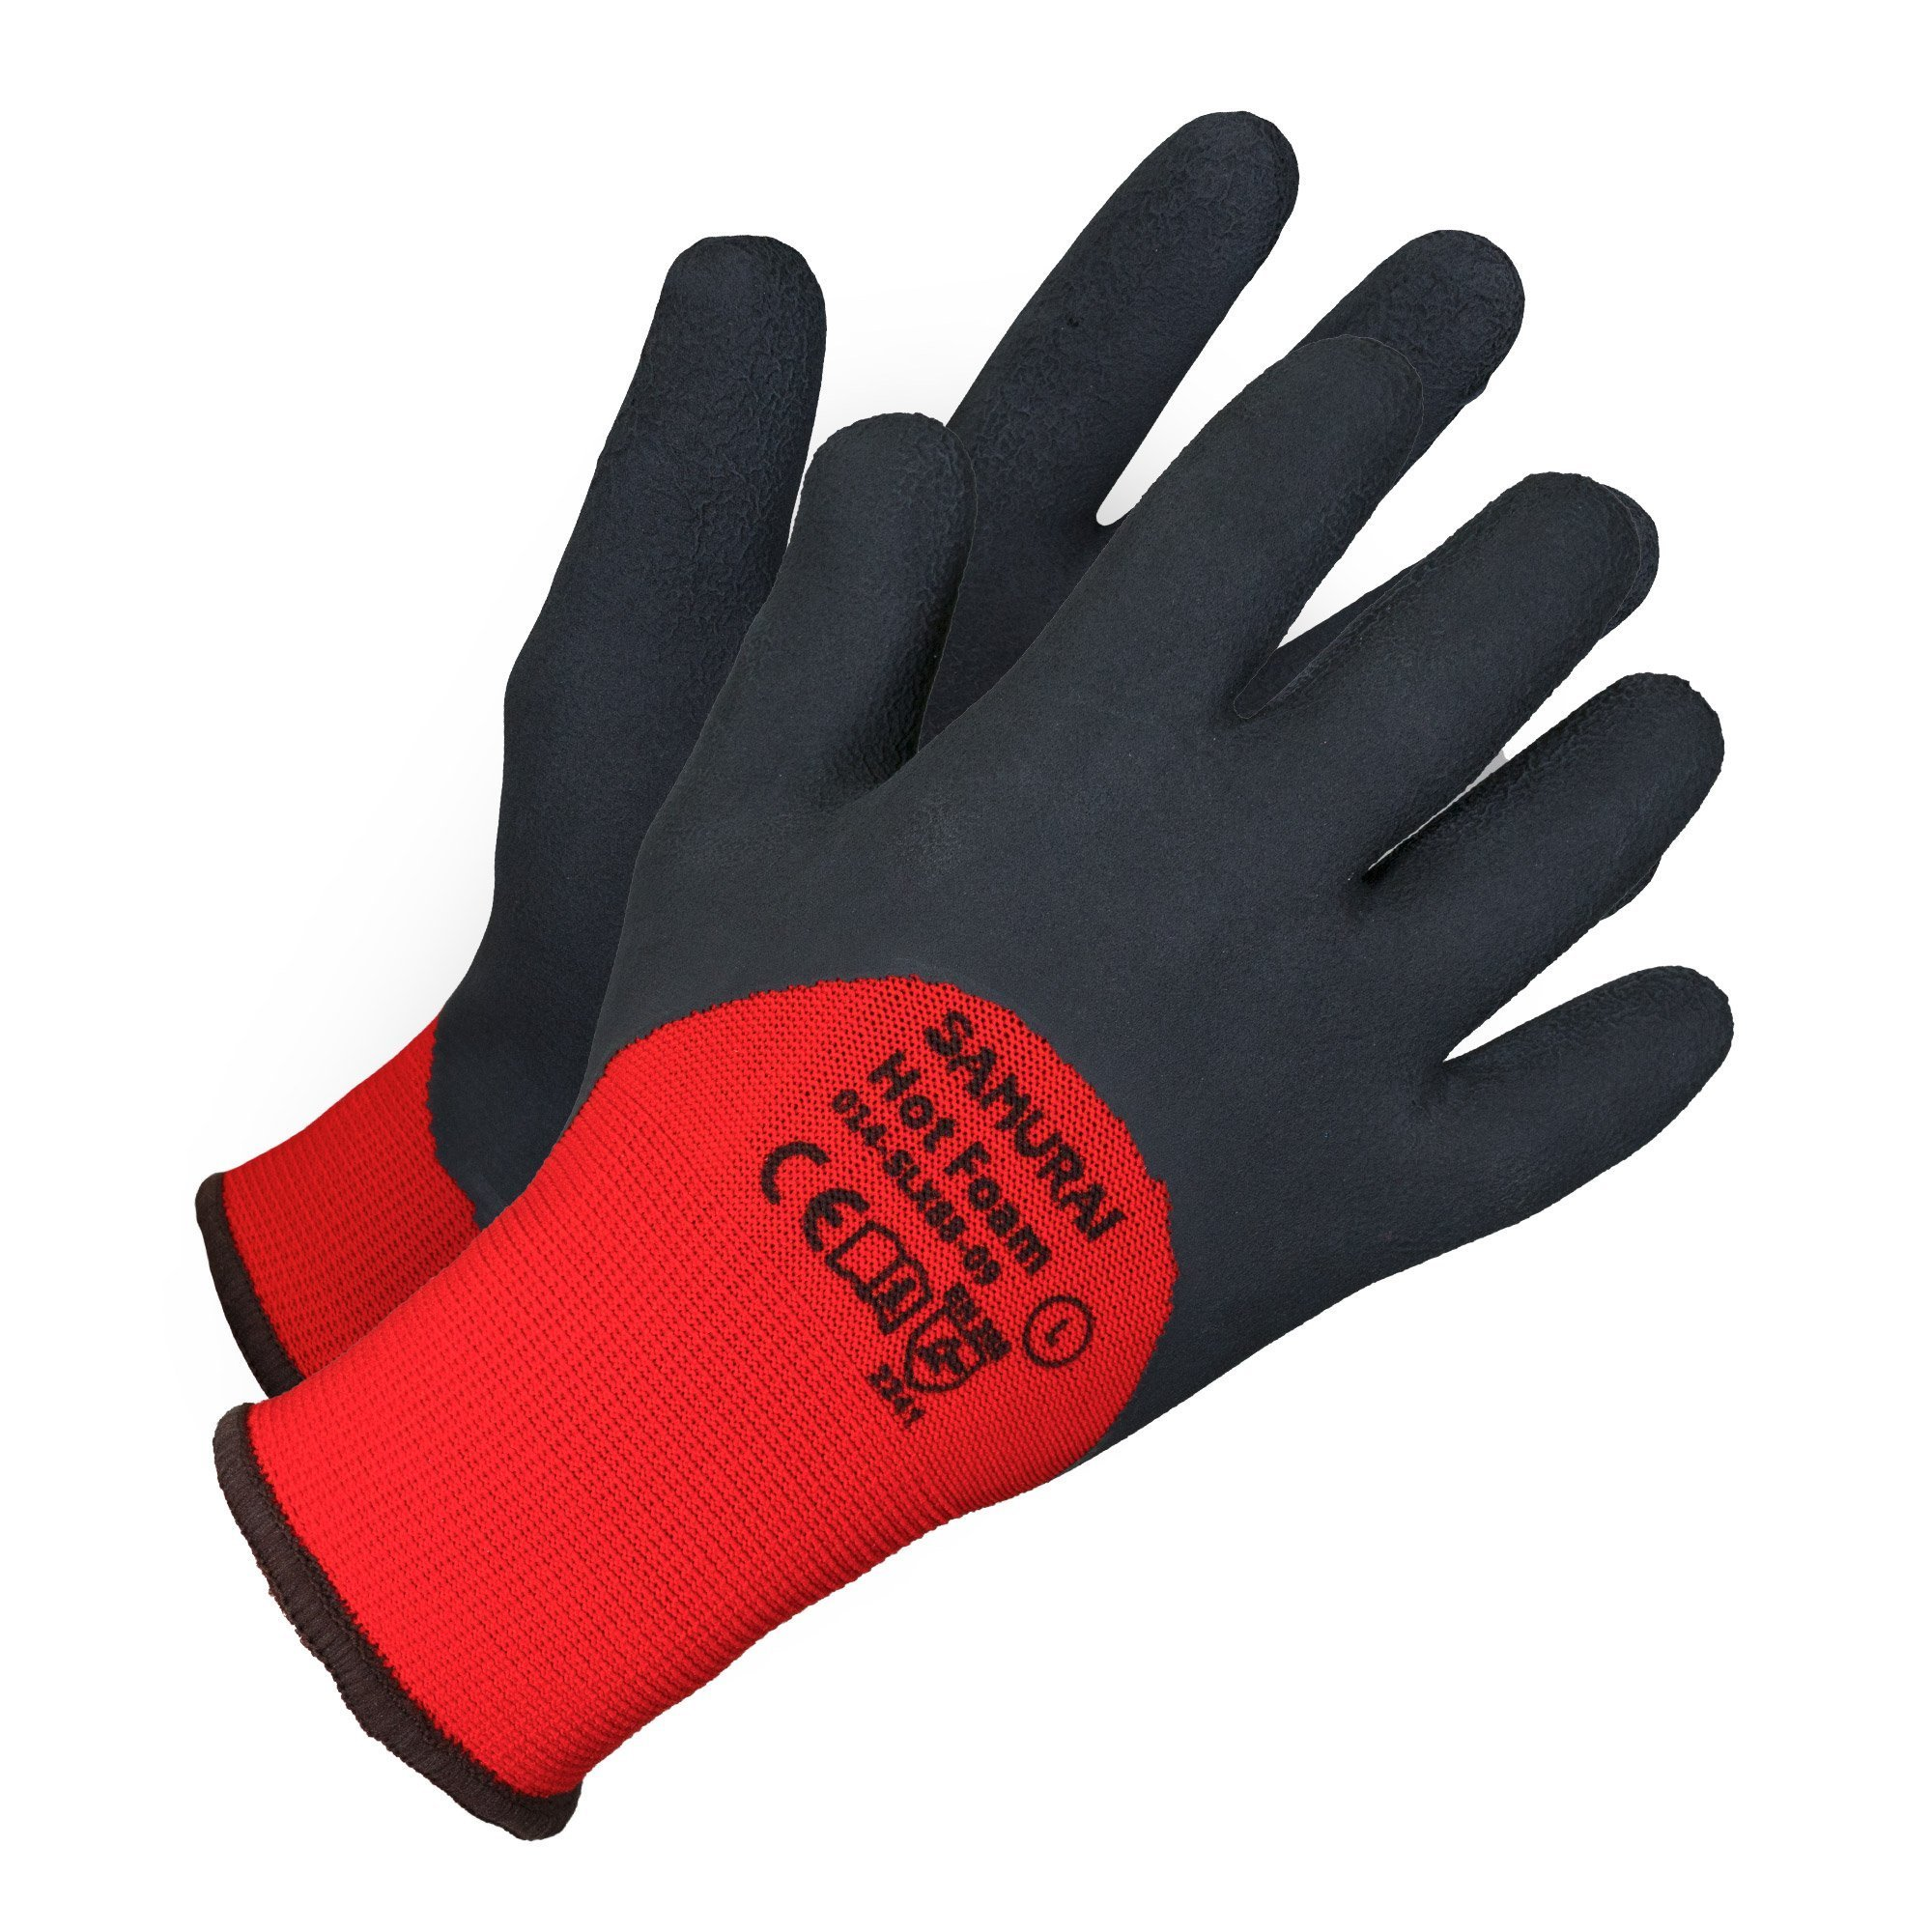 Gloves - Samurai Hot Foam - Insulated - Red - Large